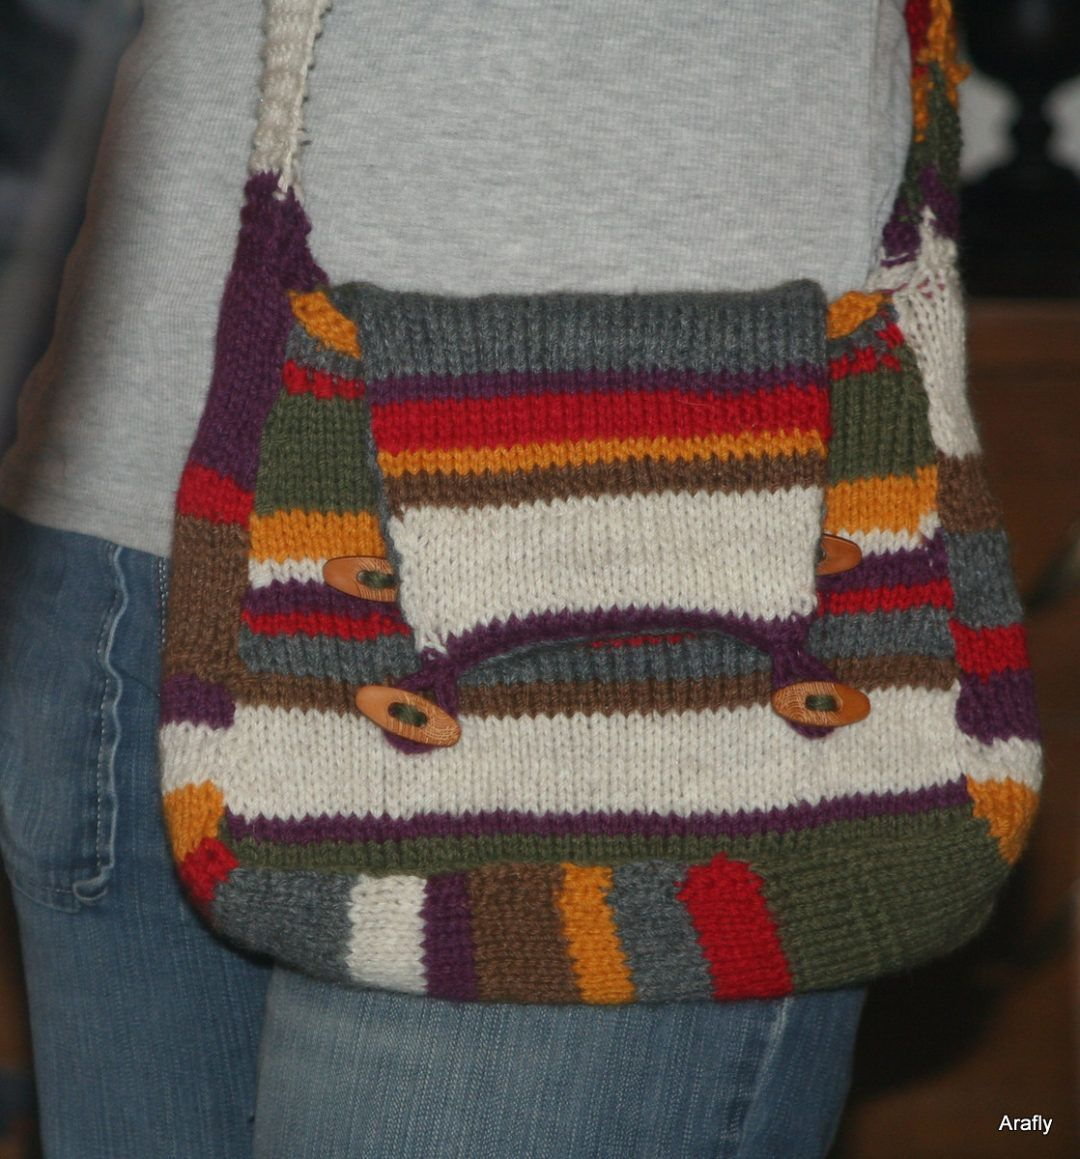 Doctor Who Knitting Patterns | Knitting patterns, Patterns and Crochet